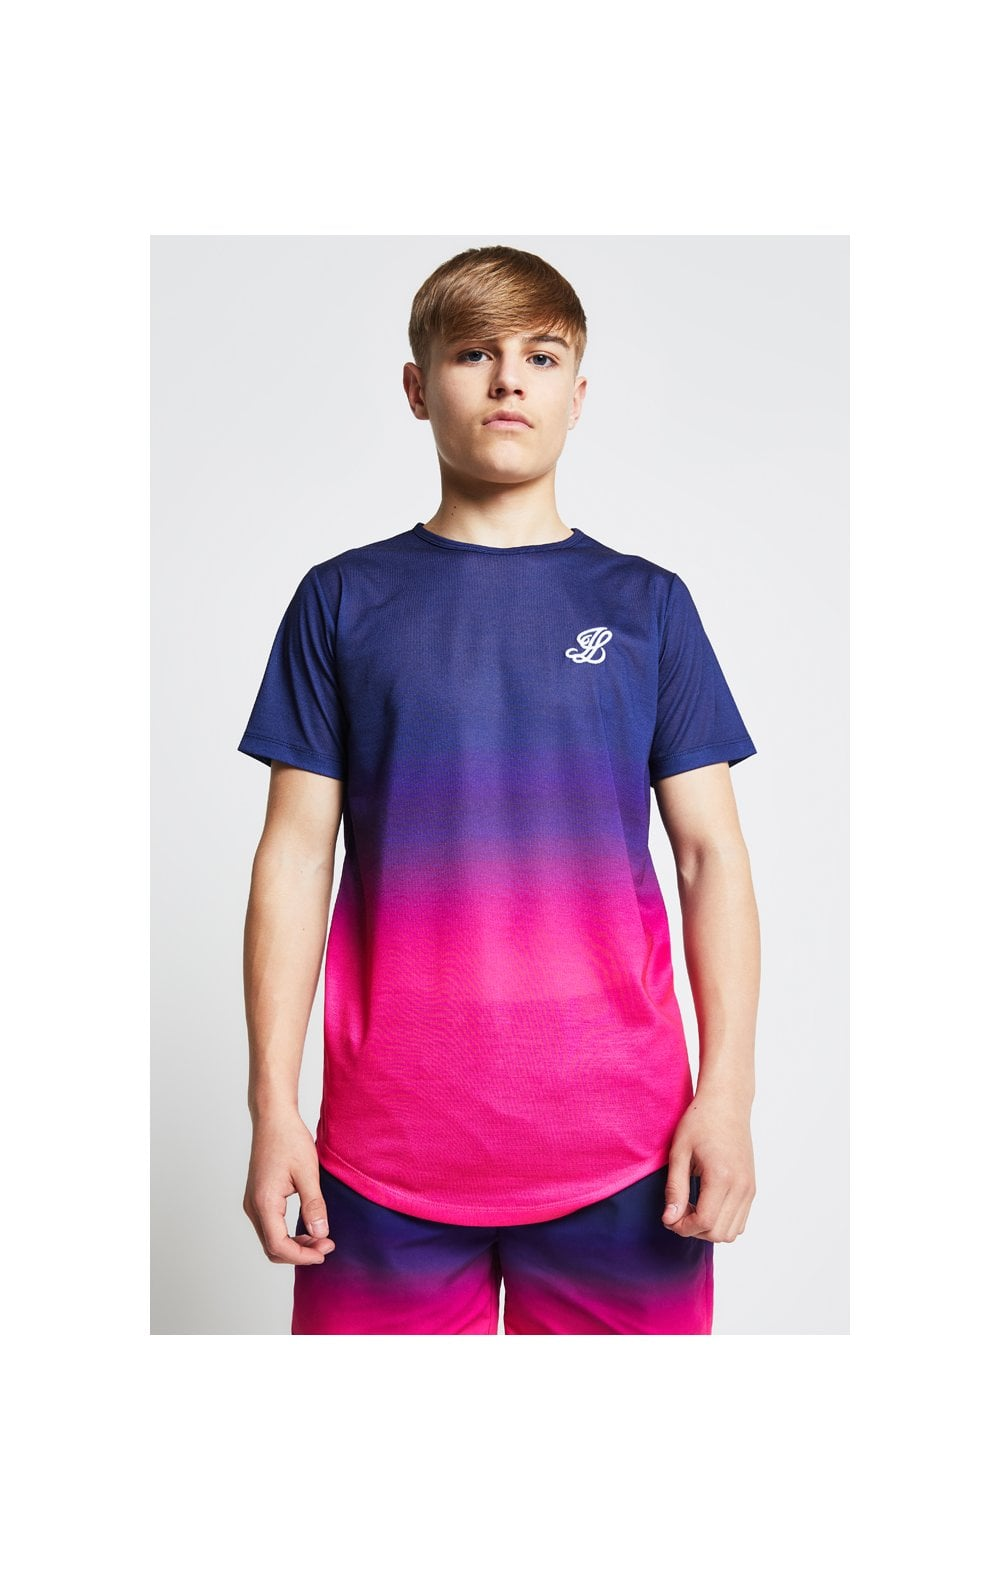 Illusive London Fade Tee - Navy & Pink